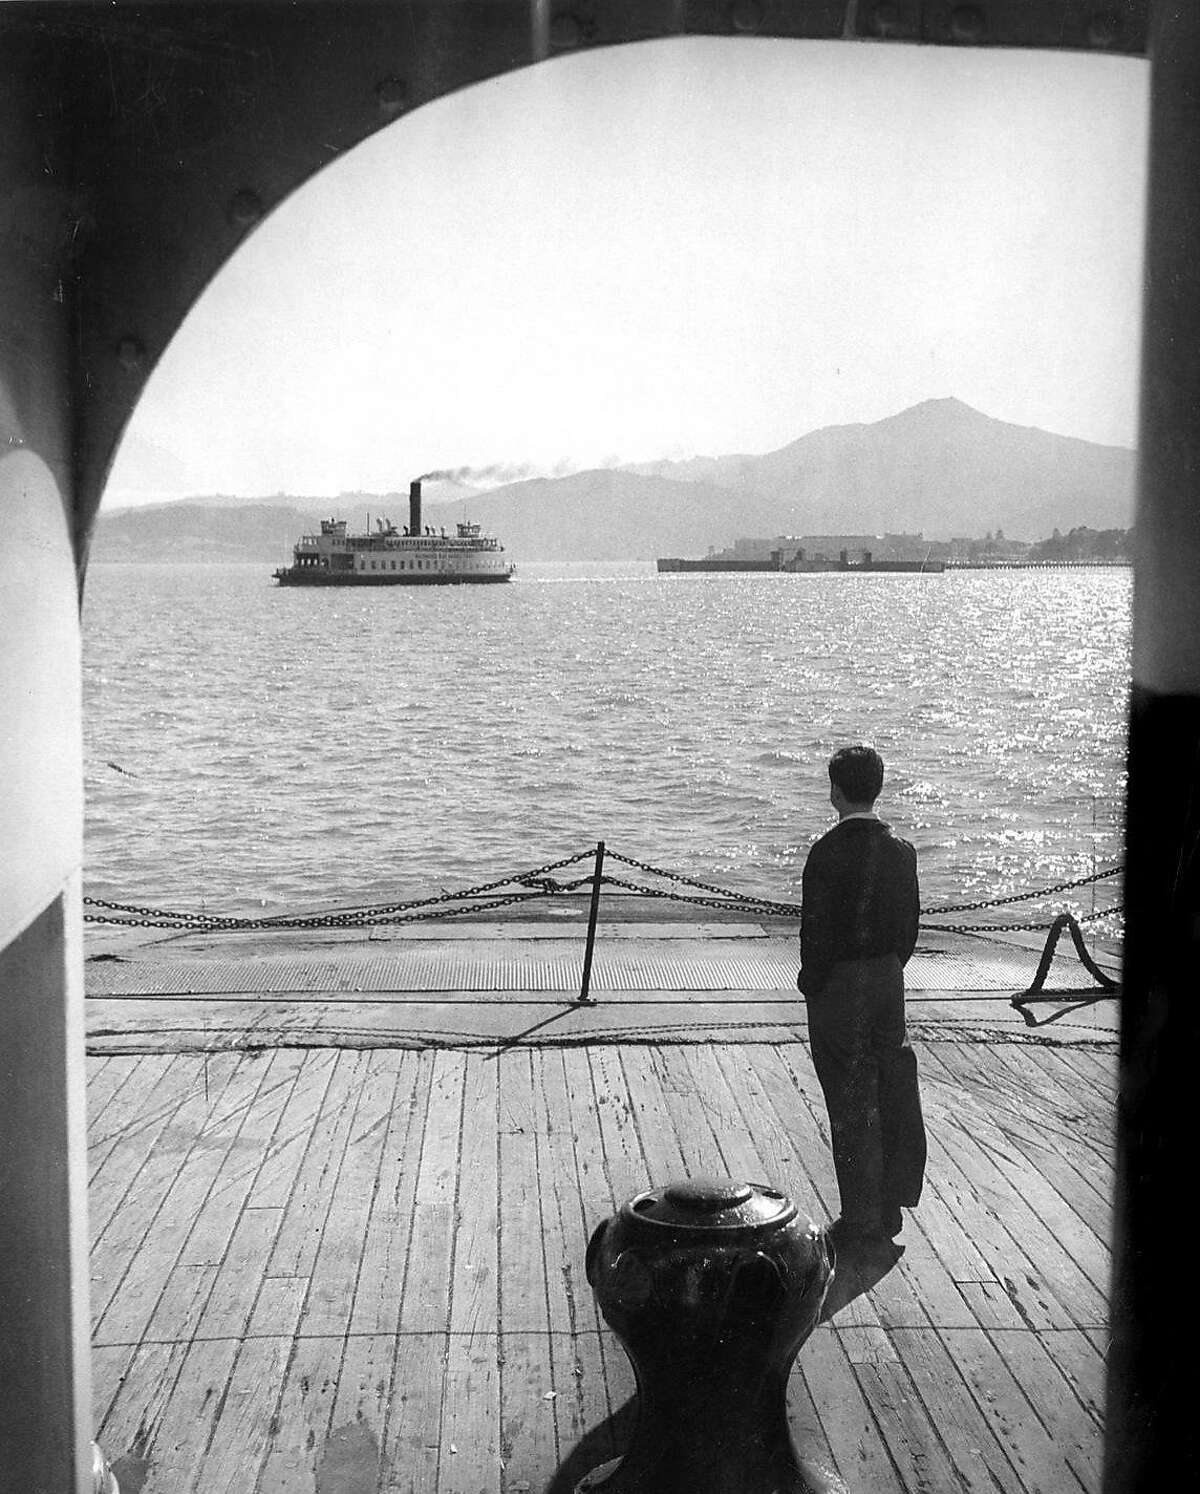 Ferry boats on San Francisco Bay. This was the richmond to San Rafael run, before the bridge made ferries obsolete.